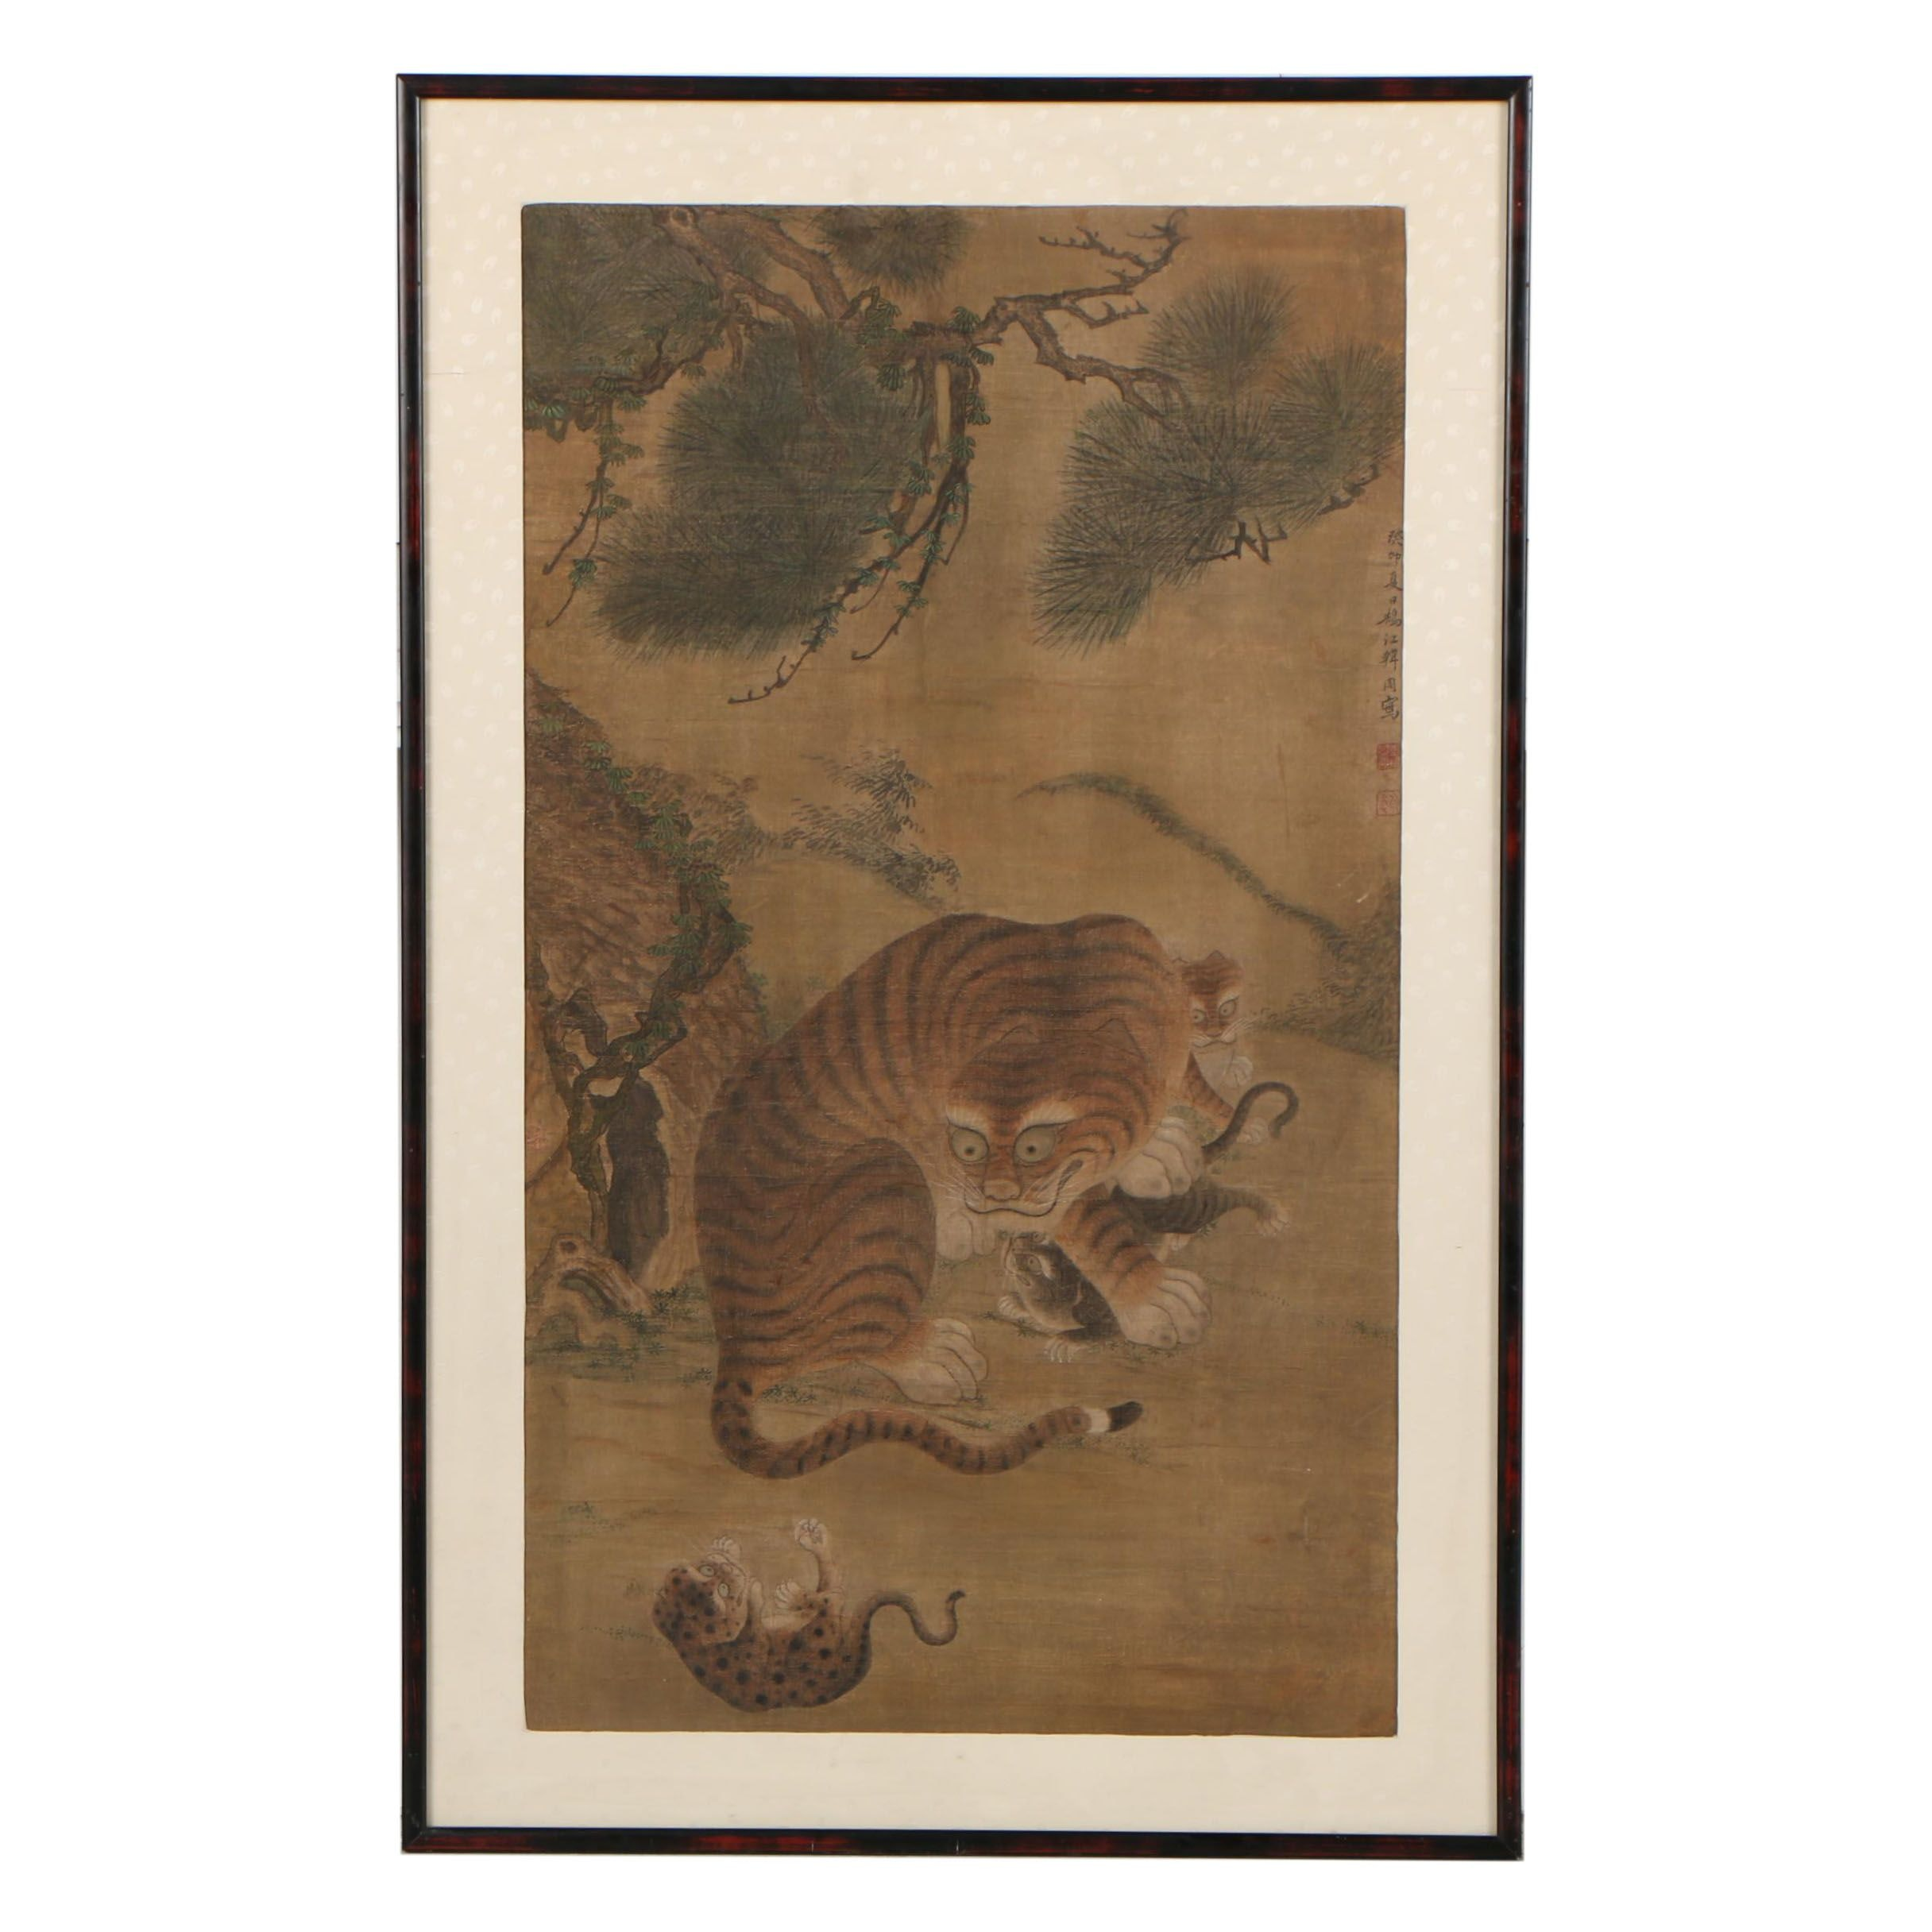 Korean Watercolor on Silk of Tiger and Cubs, 18th-19th Century